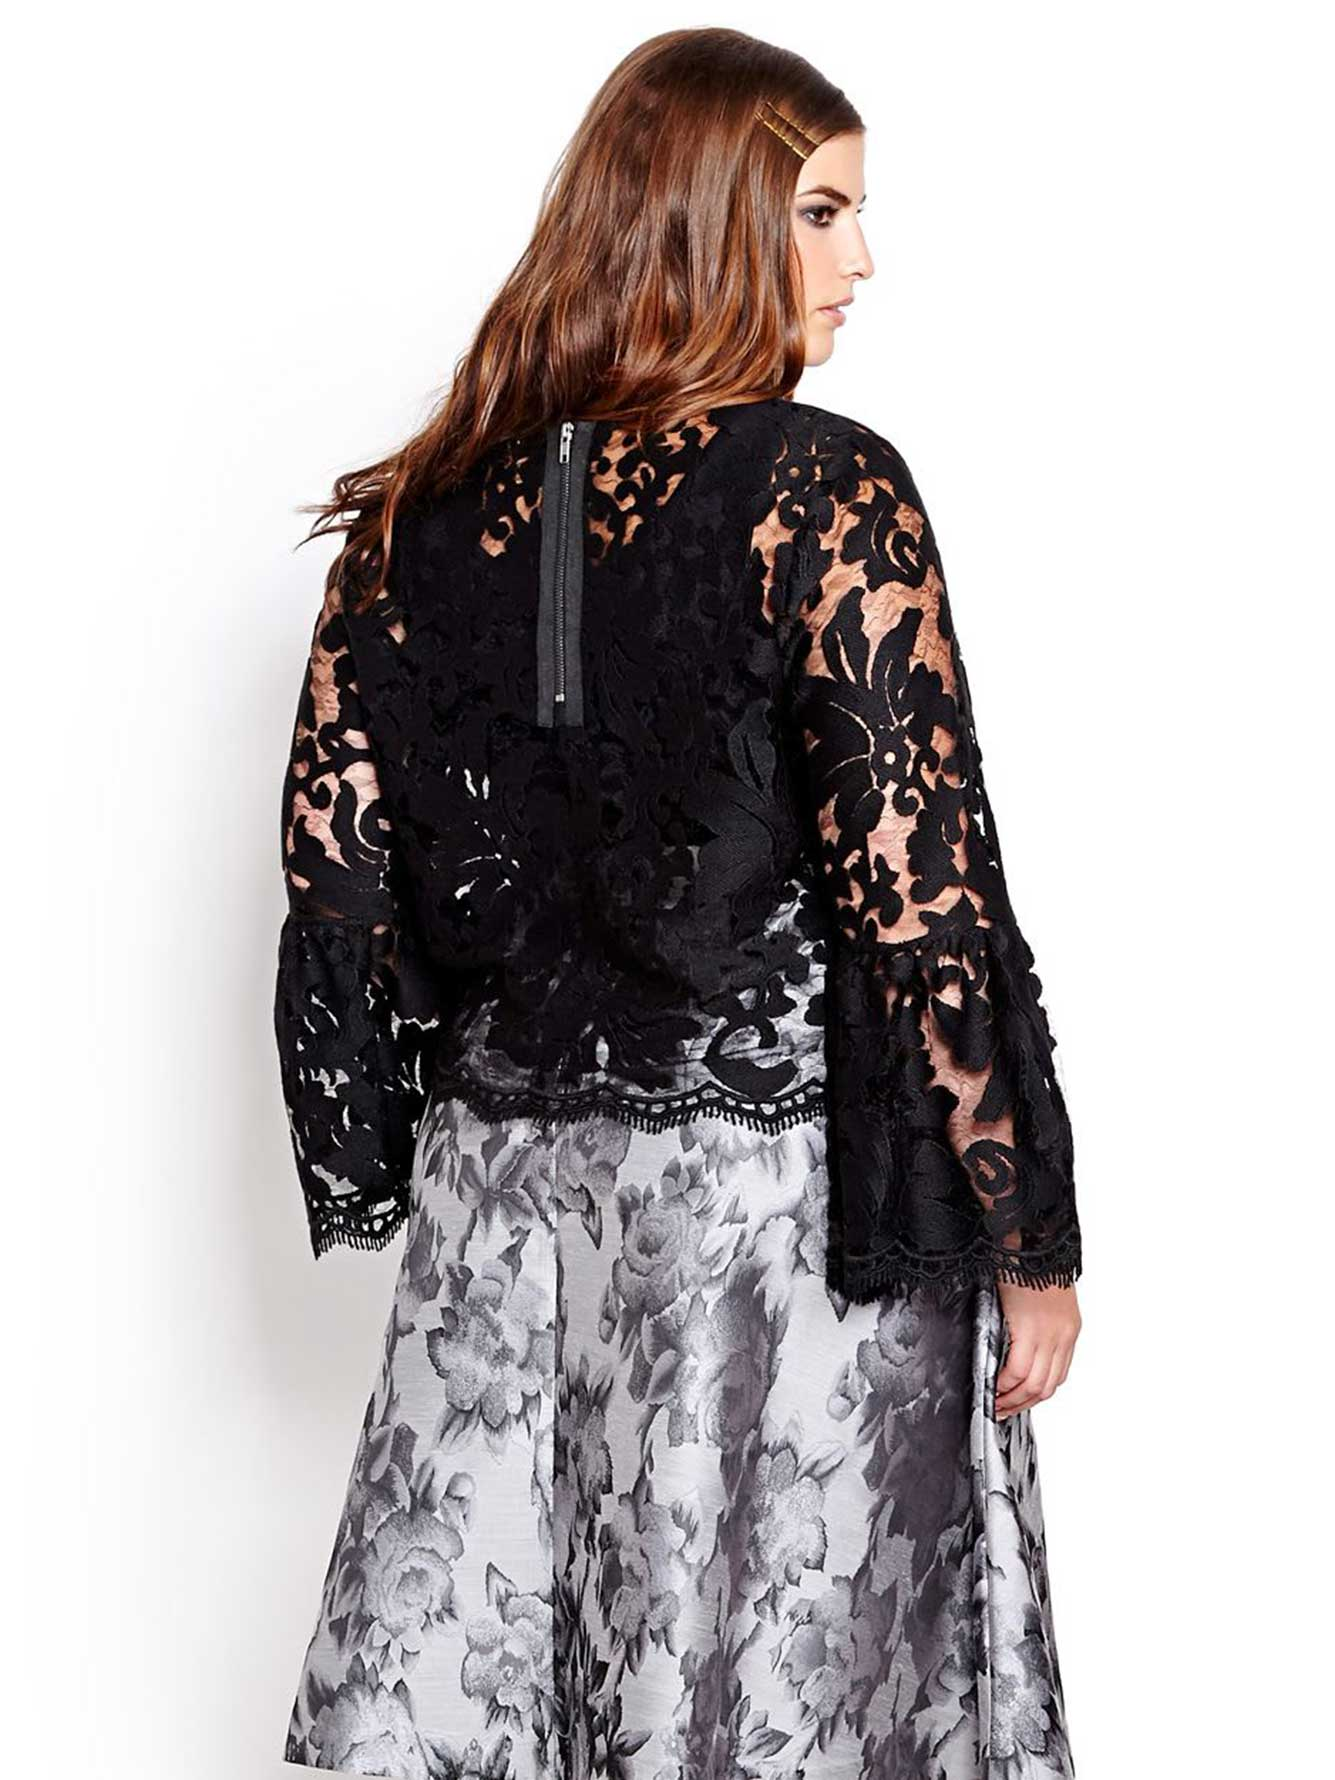 L&L Bell Sleeve Lace Top